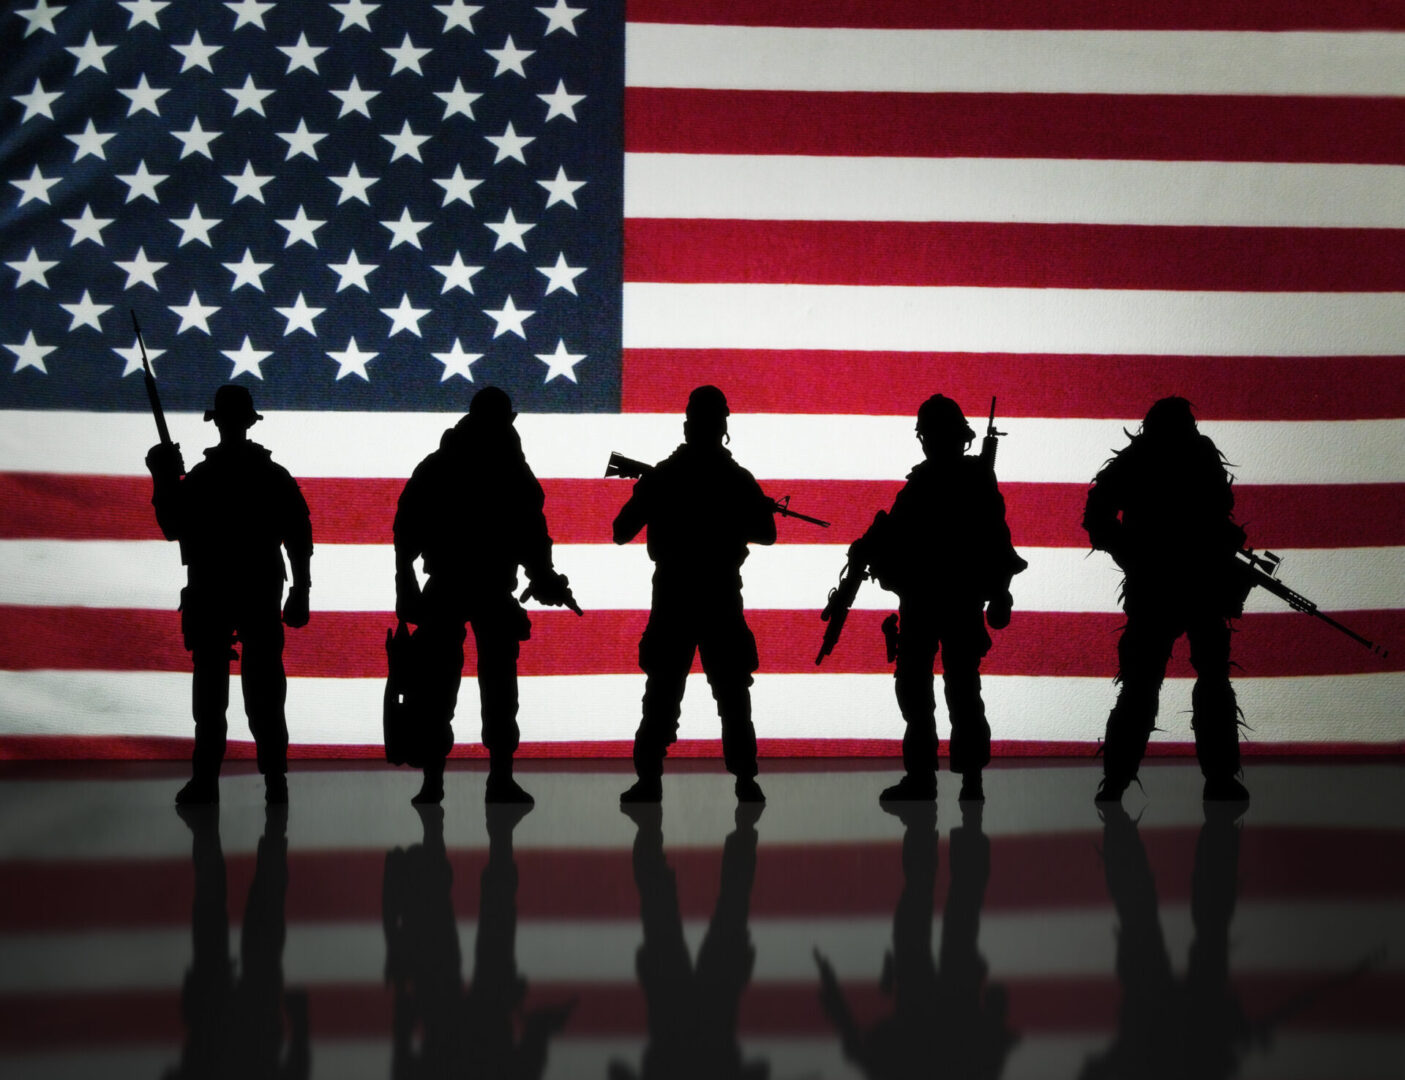 A silhouette of American soldiers